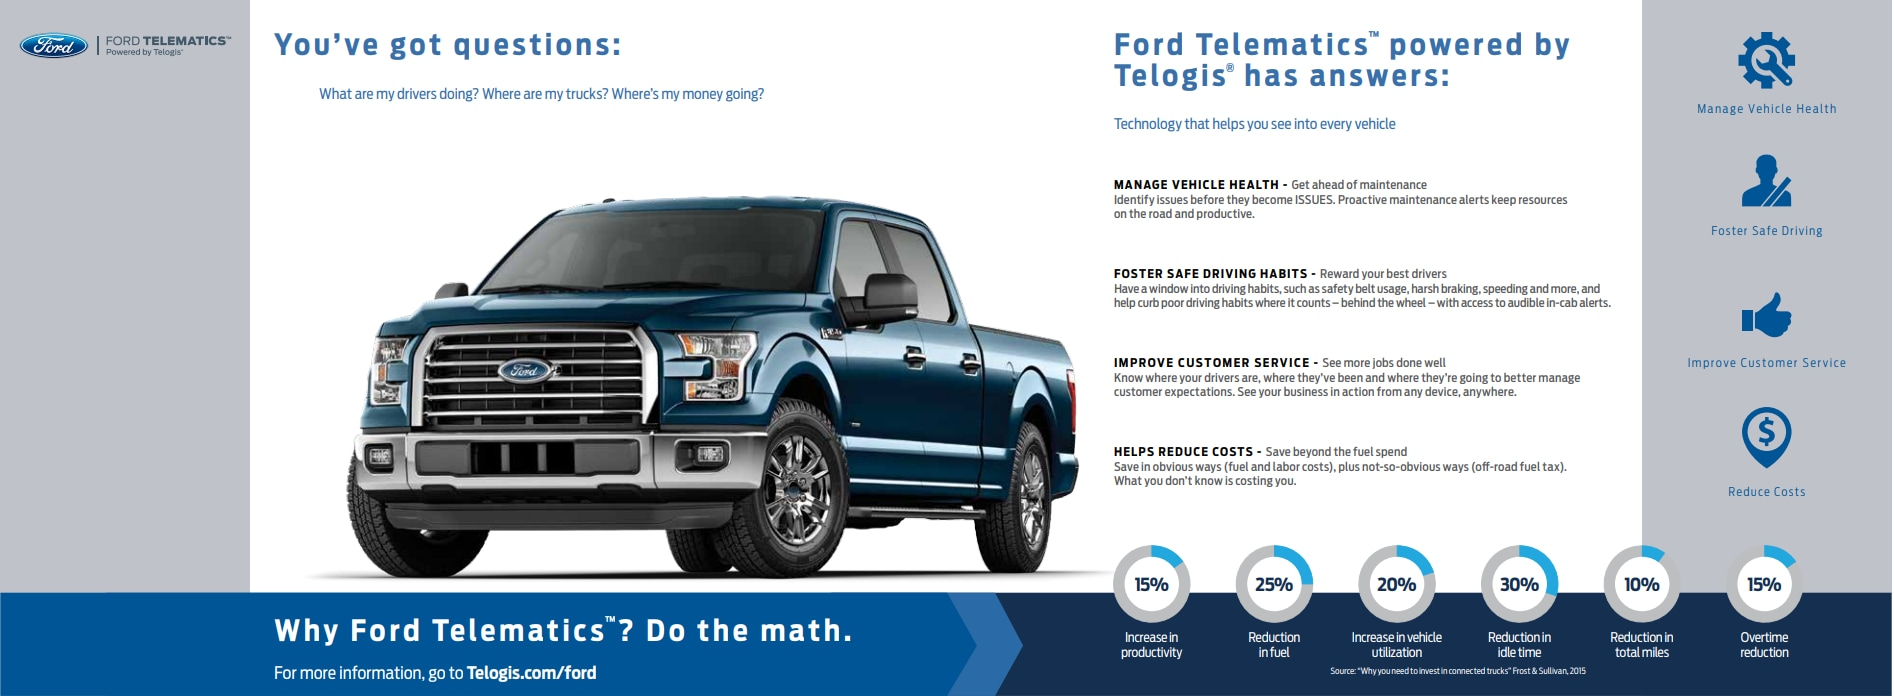 An infographic about Ford Telematics powered by Telogis